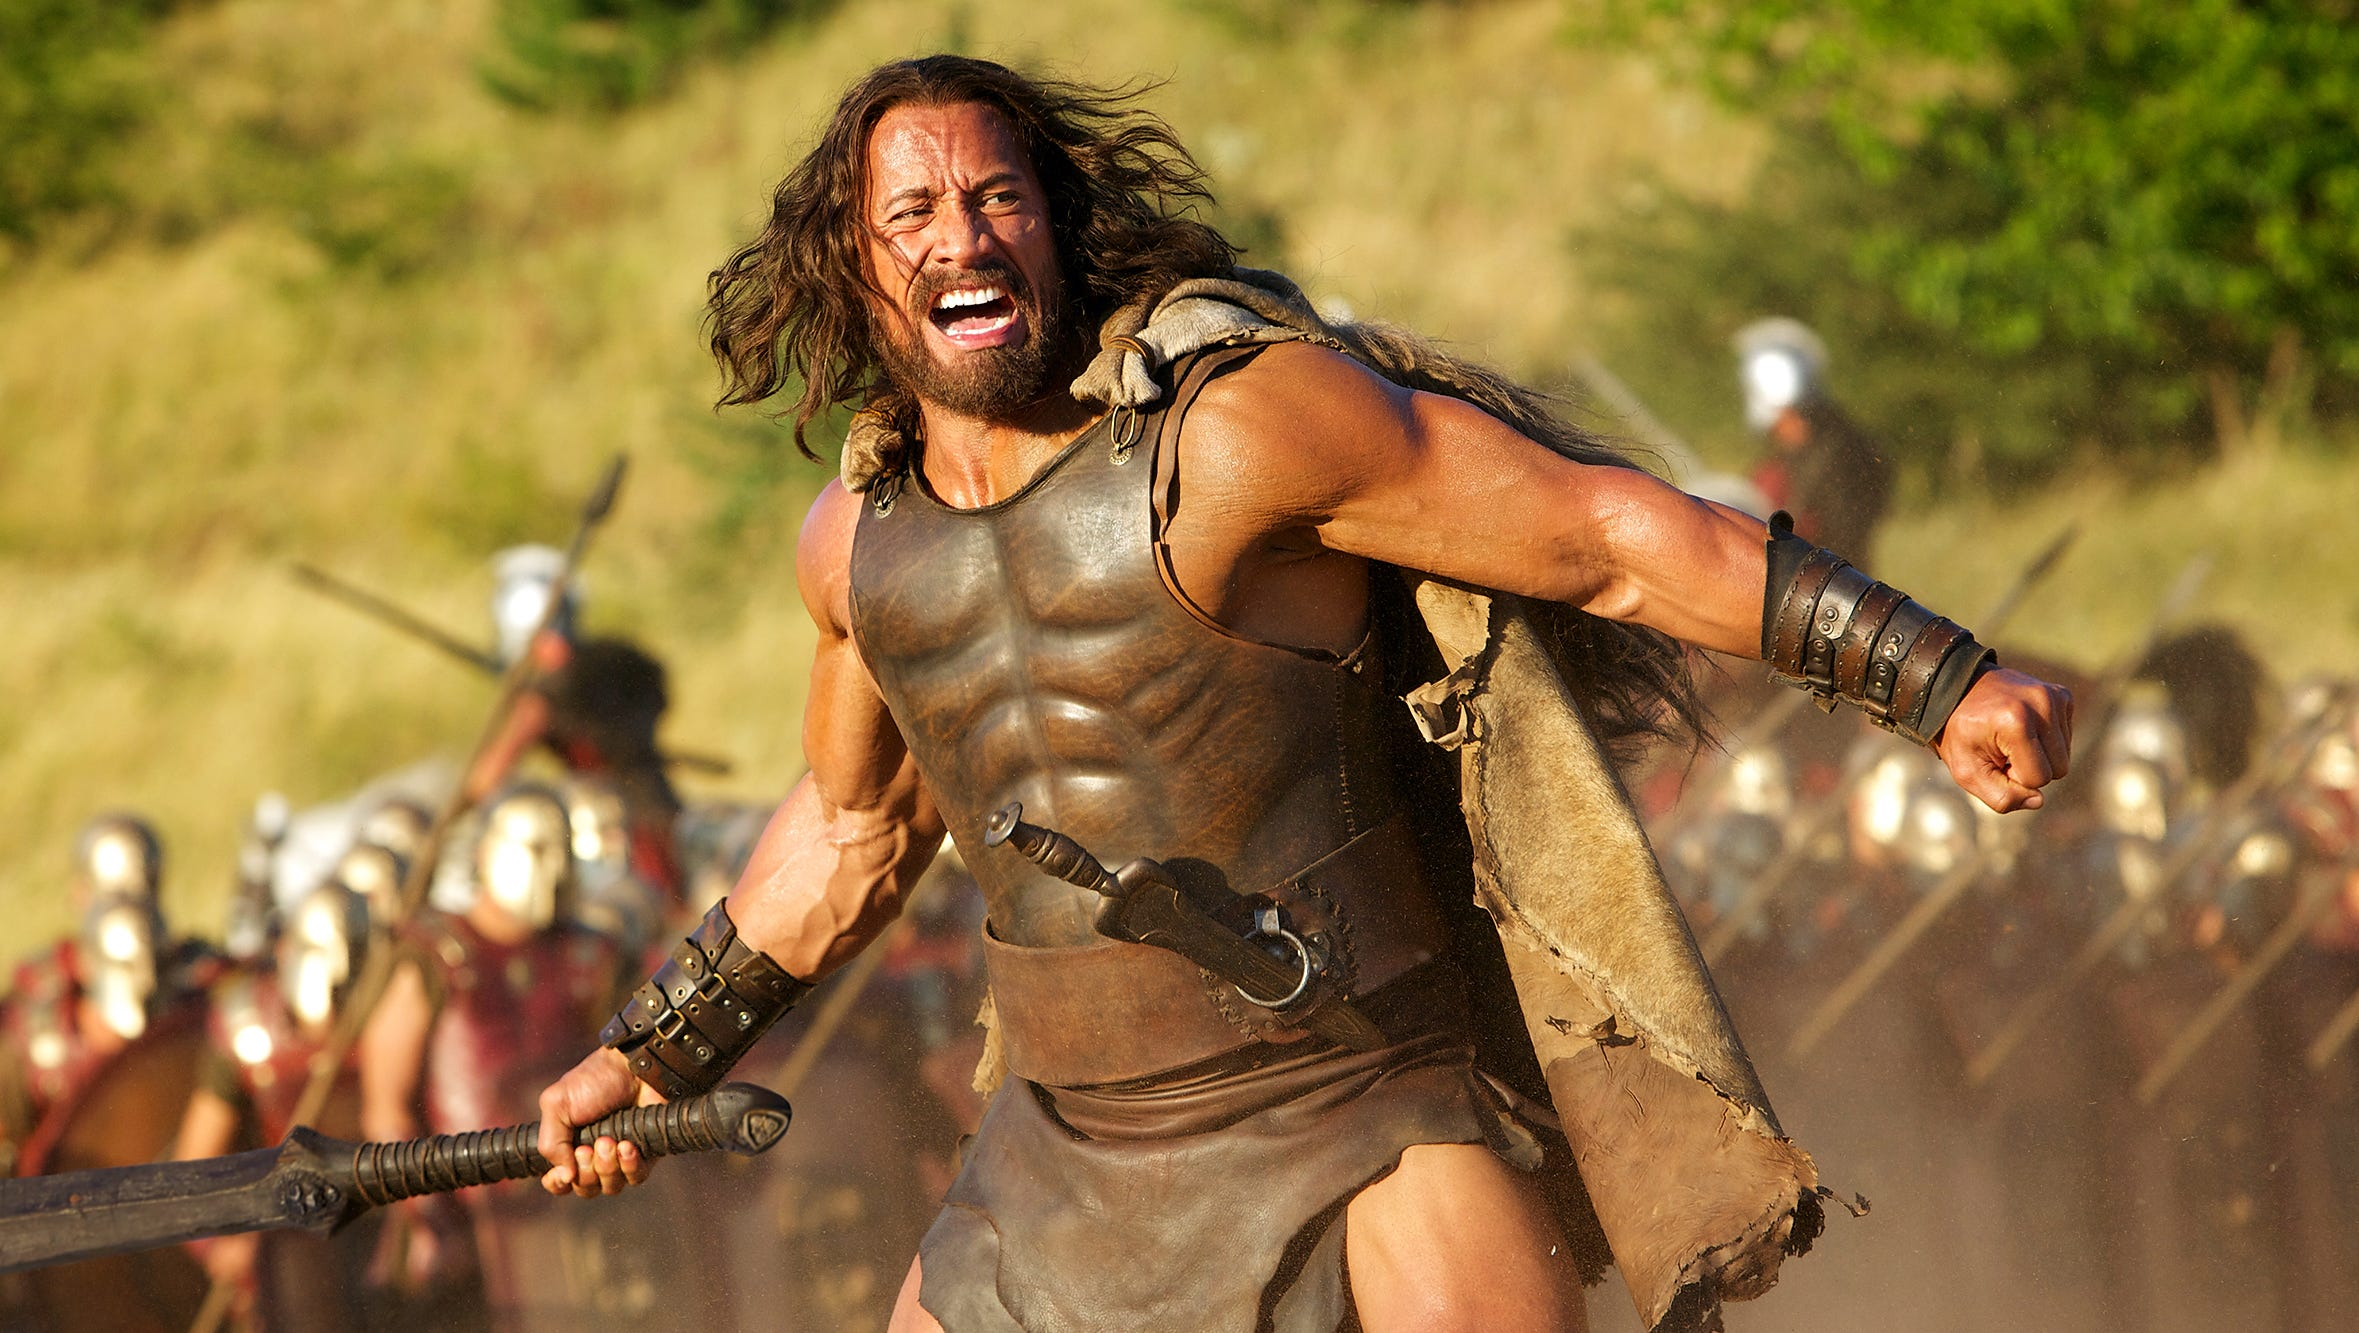 Sneak peek: The Rock becomes Hercules